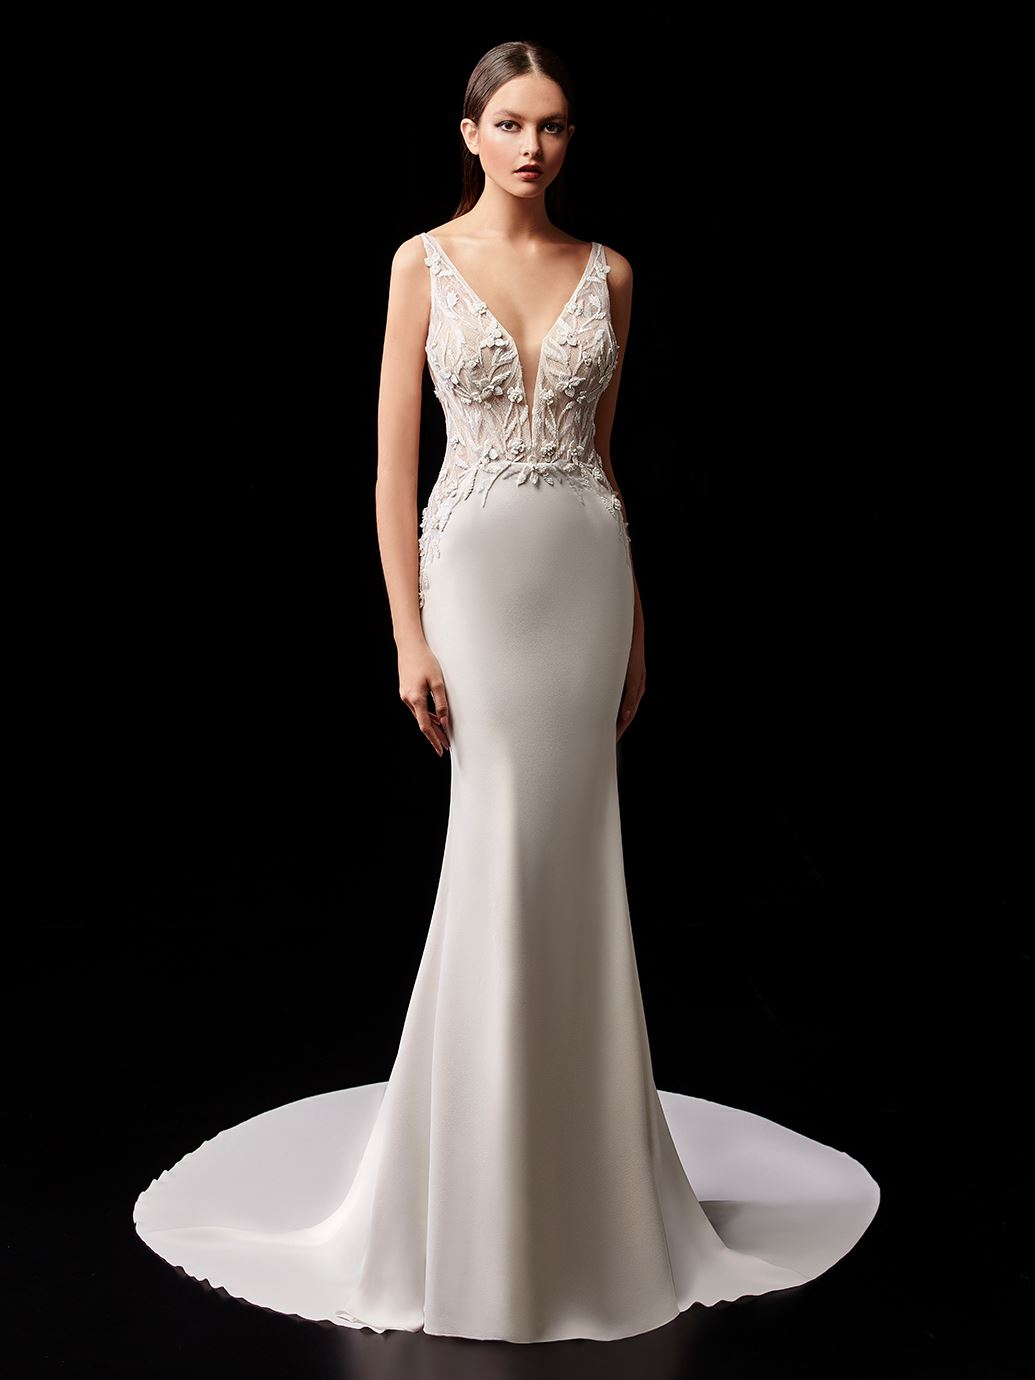 New Enzoani Arrivals at MK Bridal Image